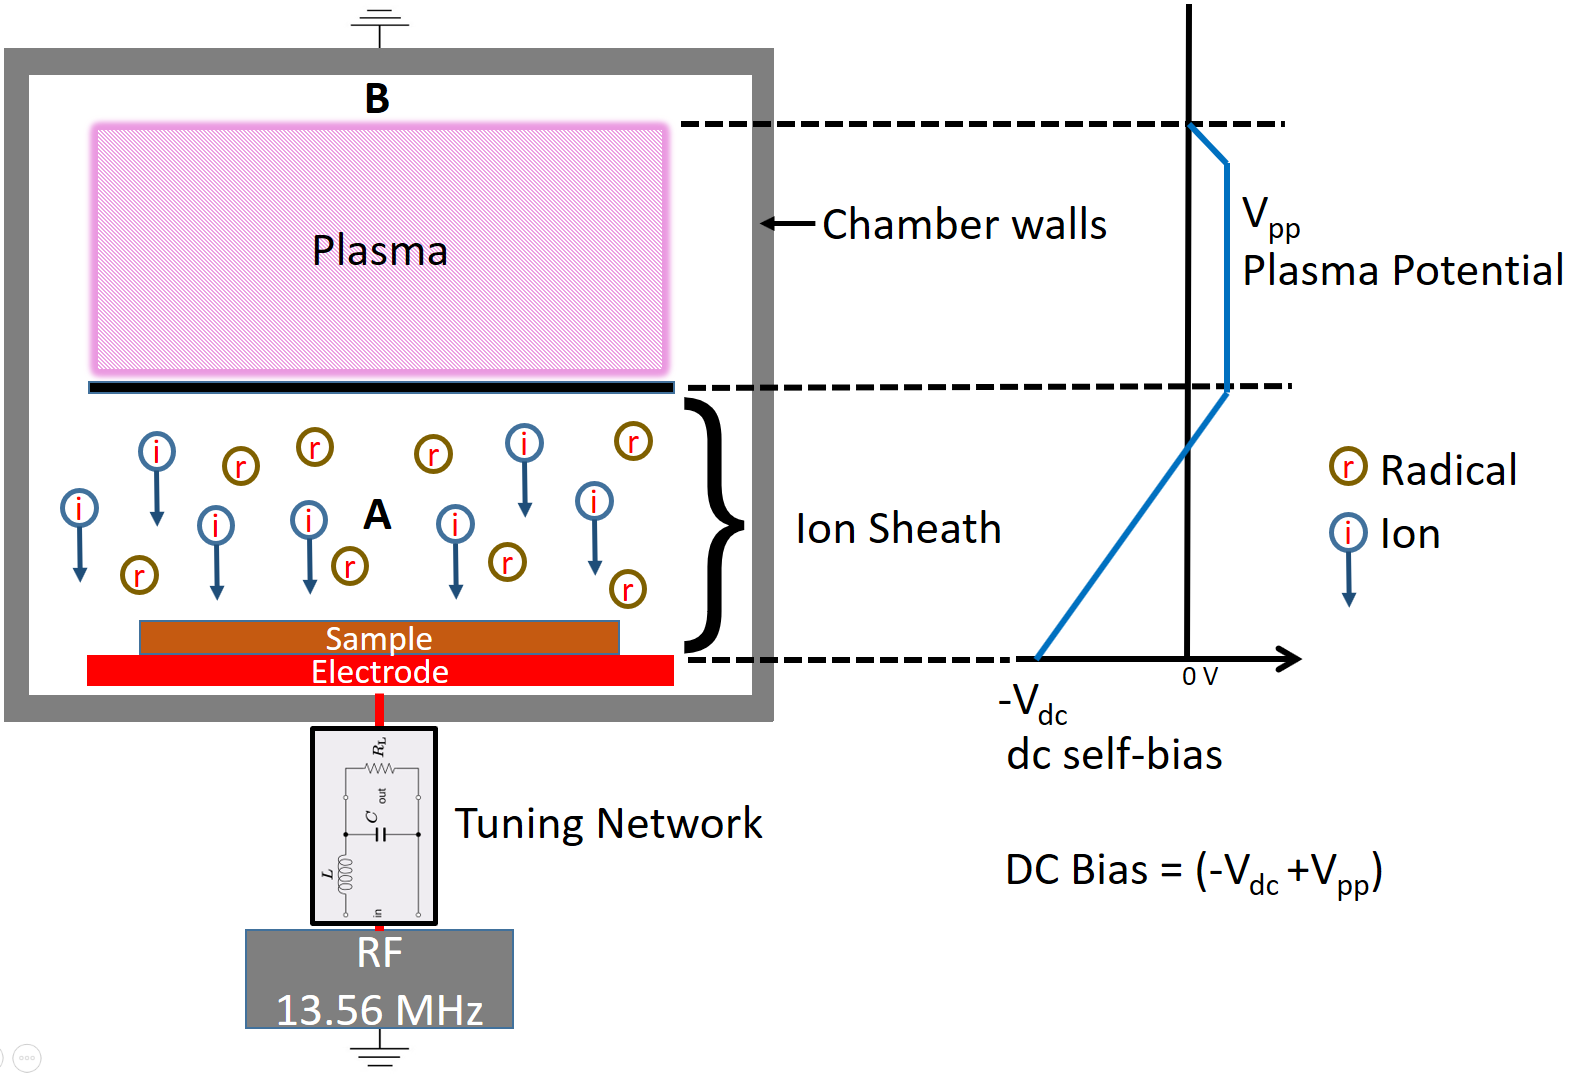 The Importance Of Dc Self Bias Voltage In Plasma Applications Voltagecontrolledstatevariablefilter Powersupplycircuit